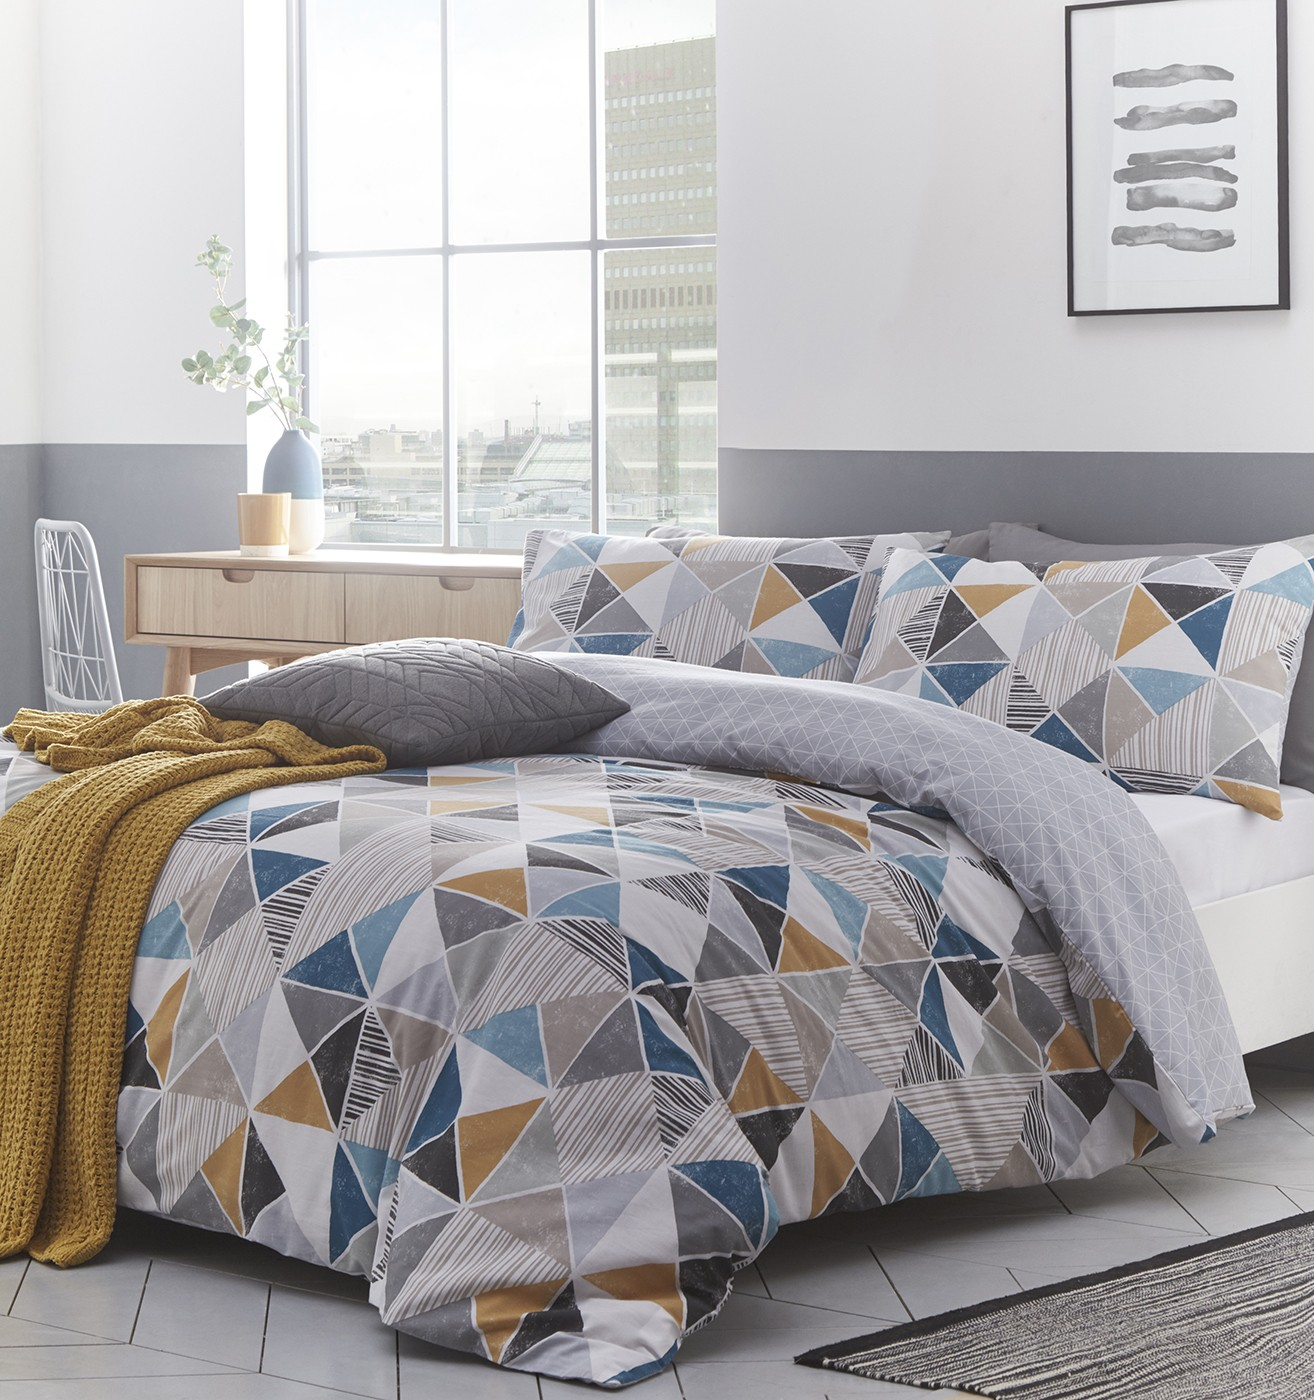 The Home Furnishings Company Harlequin Double Size Duvet Cover and Matching Pillow Cases